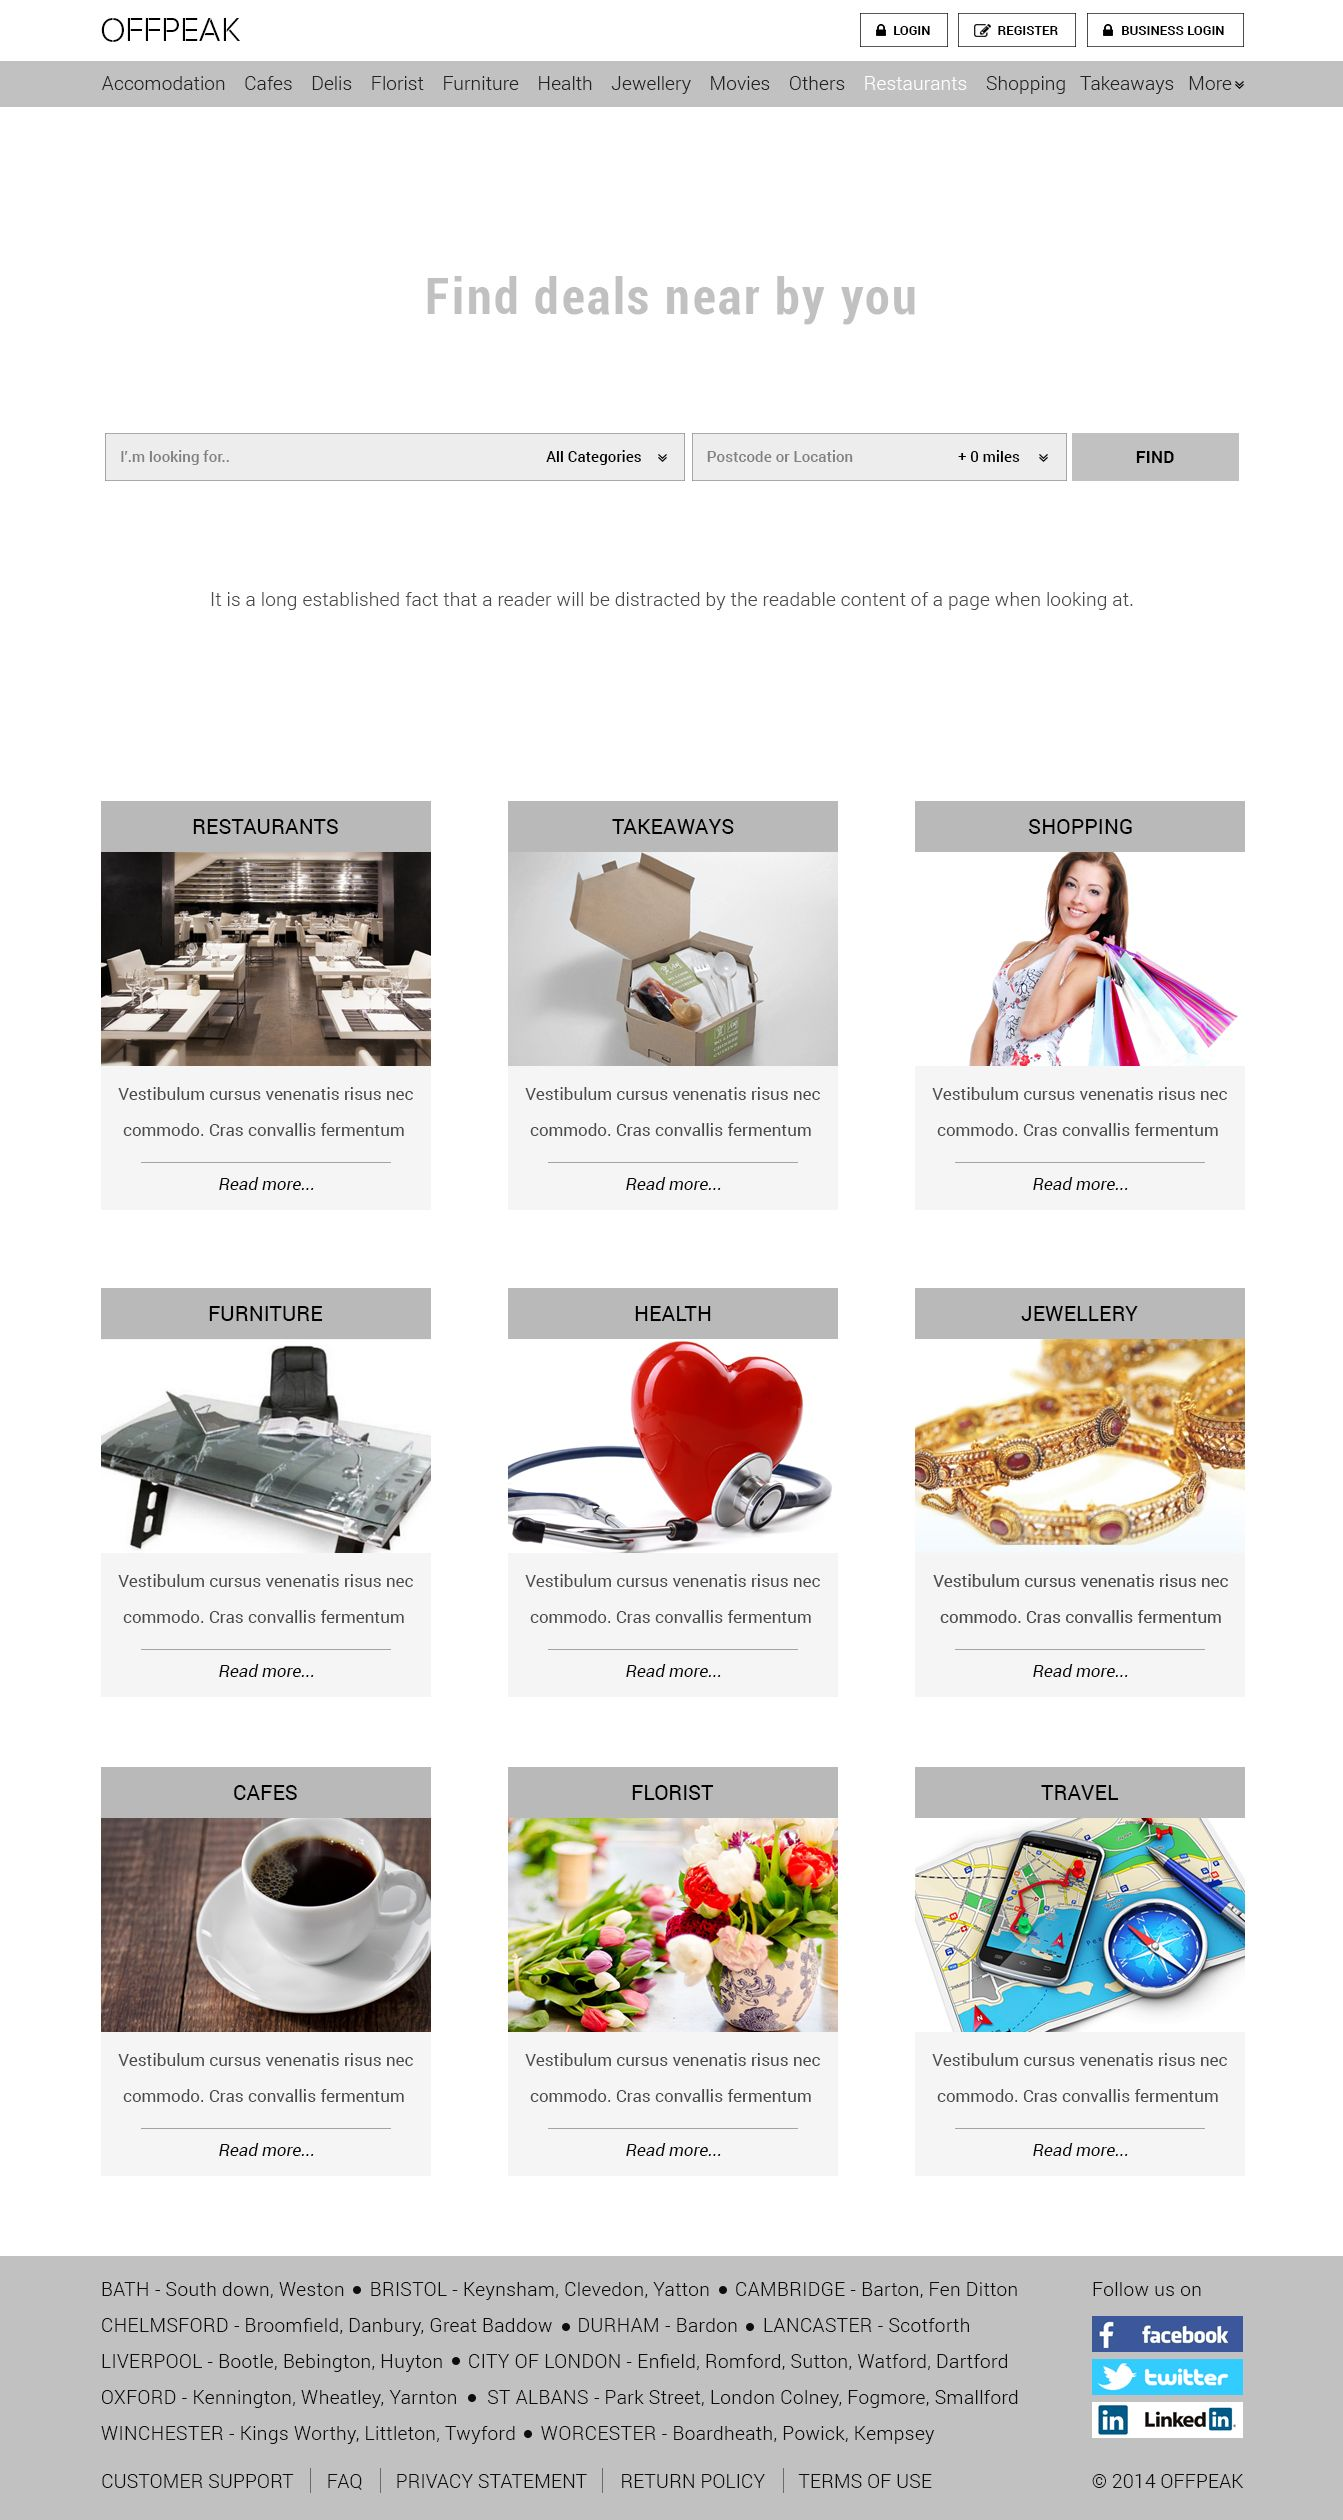 Pin By Rajan C On Web Layout Health Jewelry Web Layout Find Deals